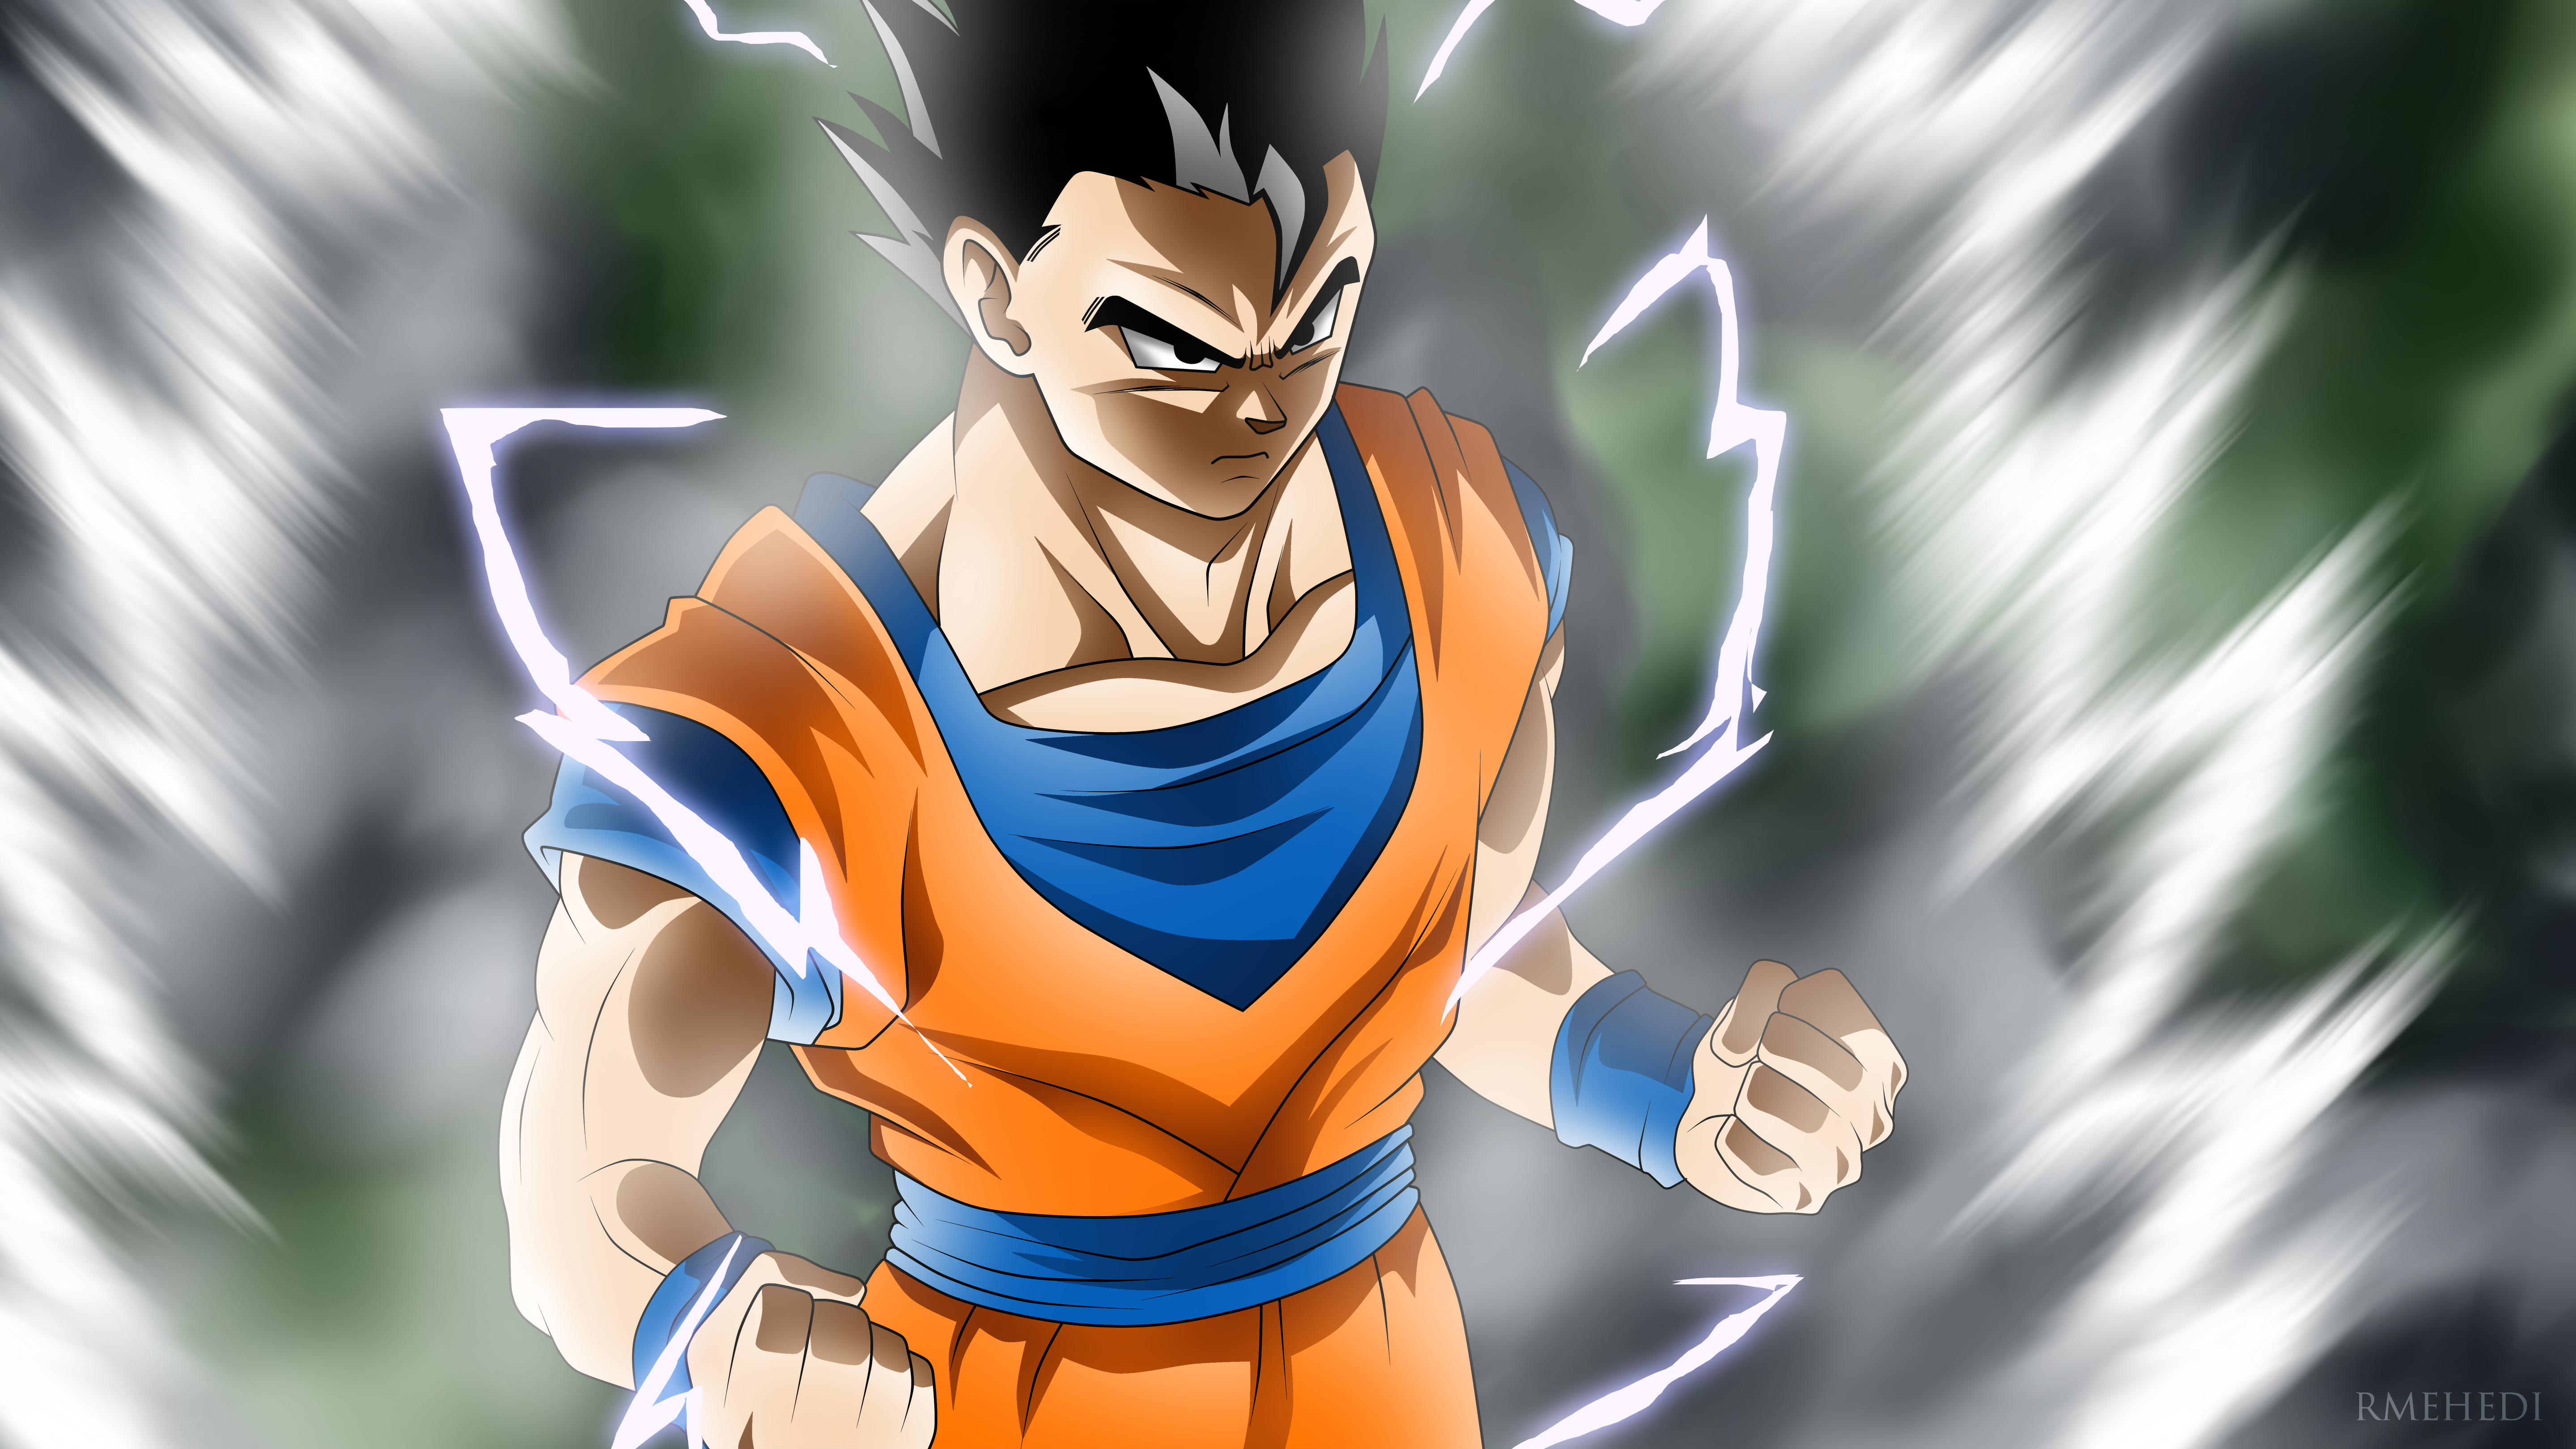 48 4k Ultra Hd Gohan Dragon Ball Wallpapers Background Images Wallpaper Abyss